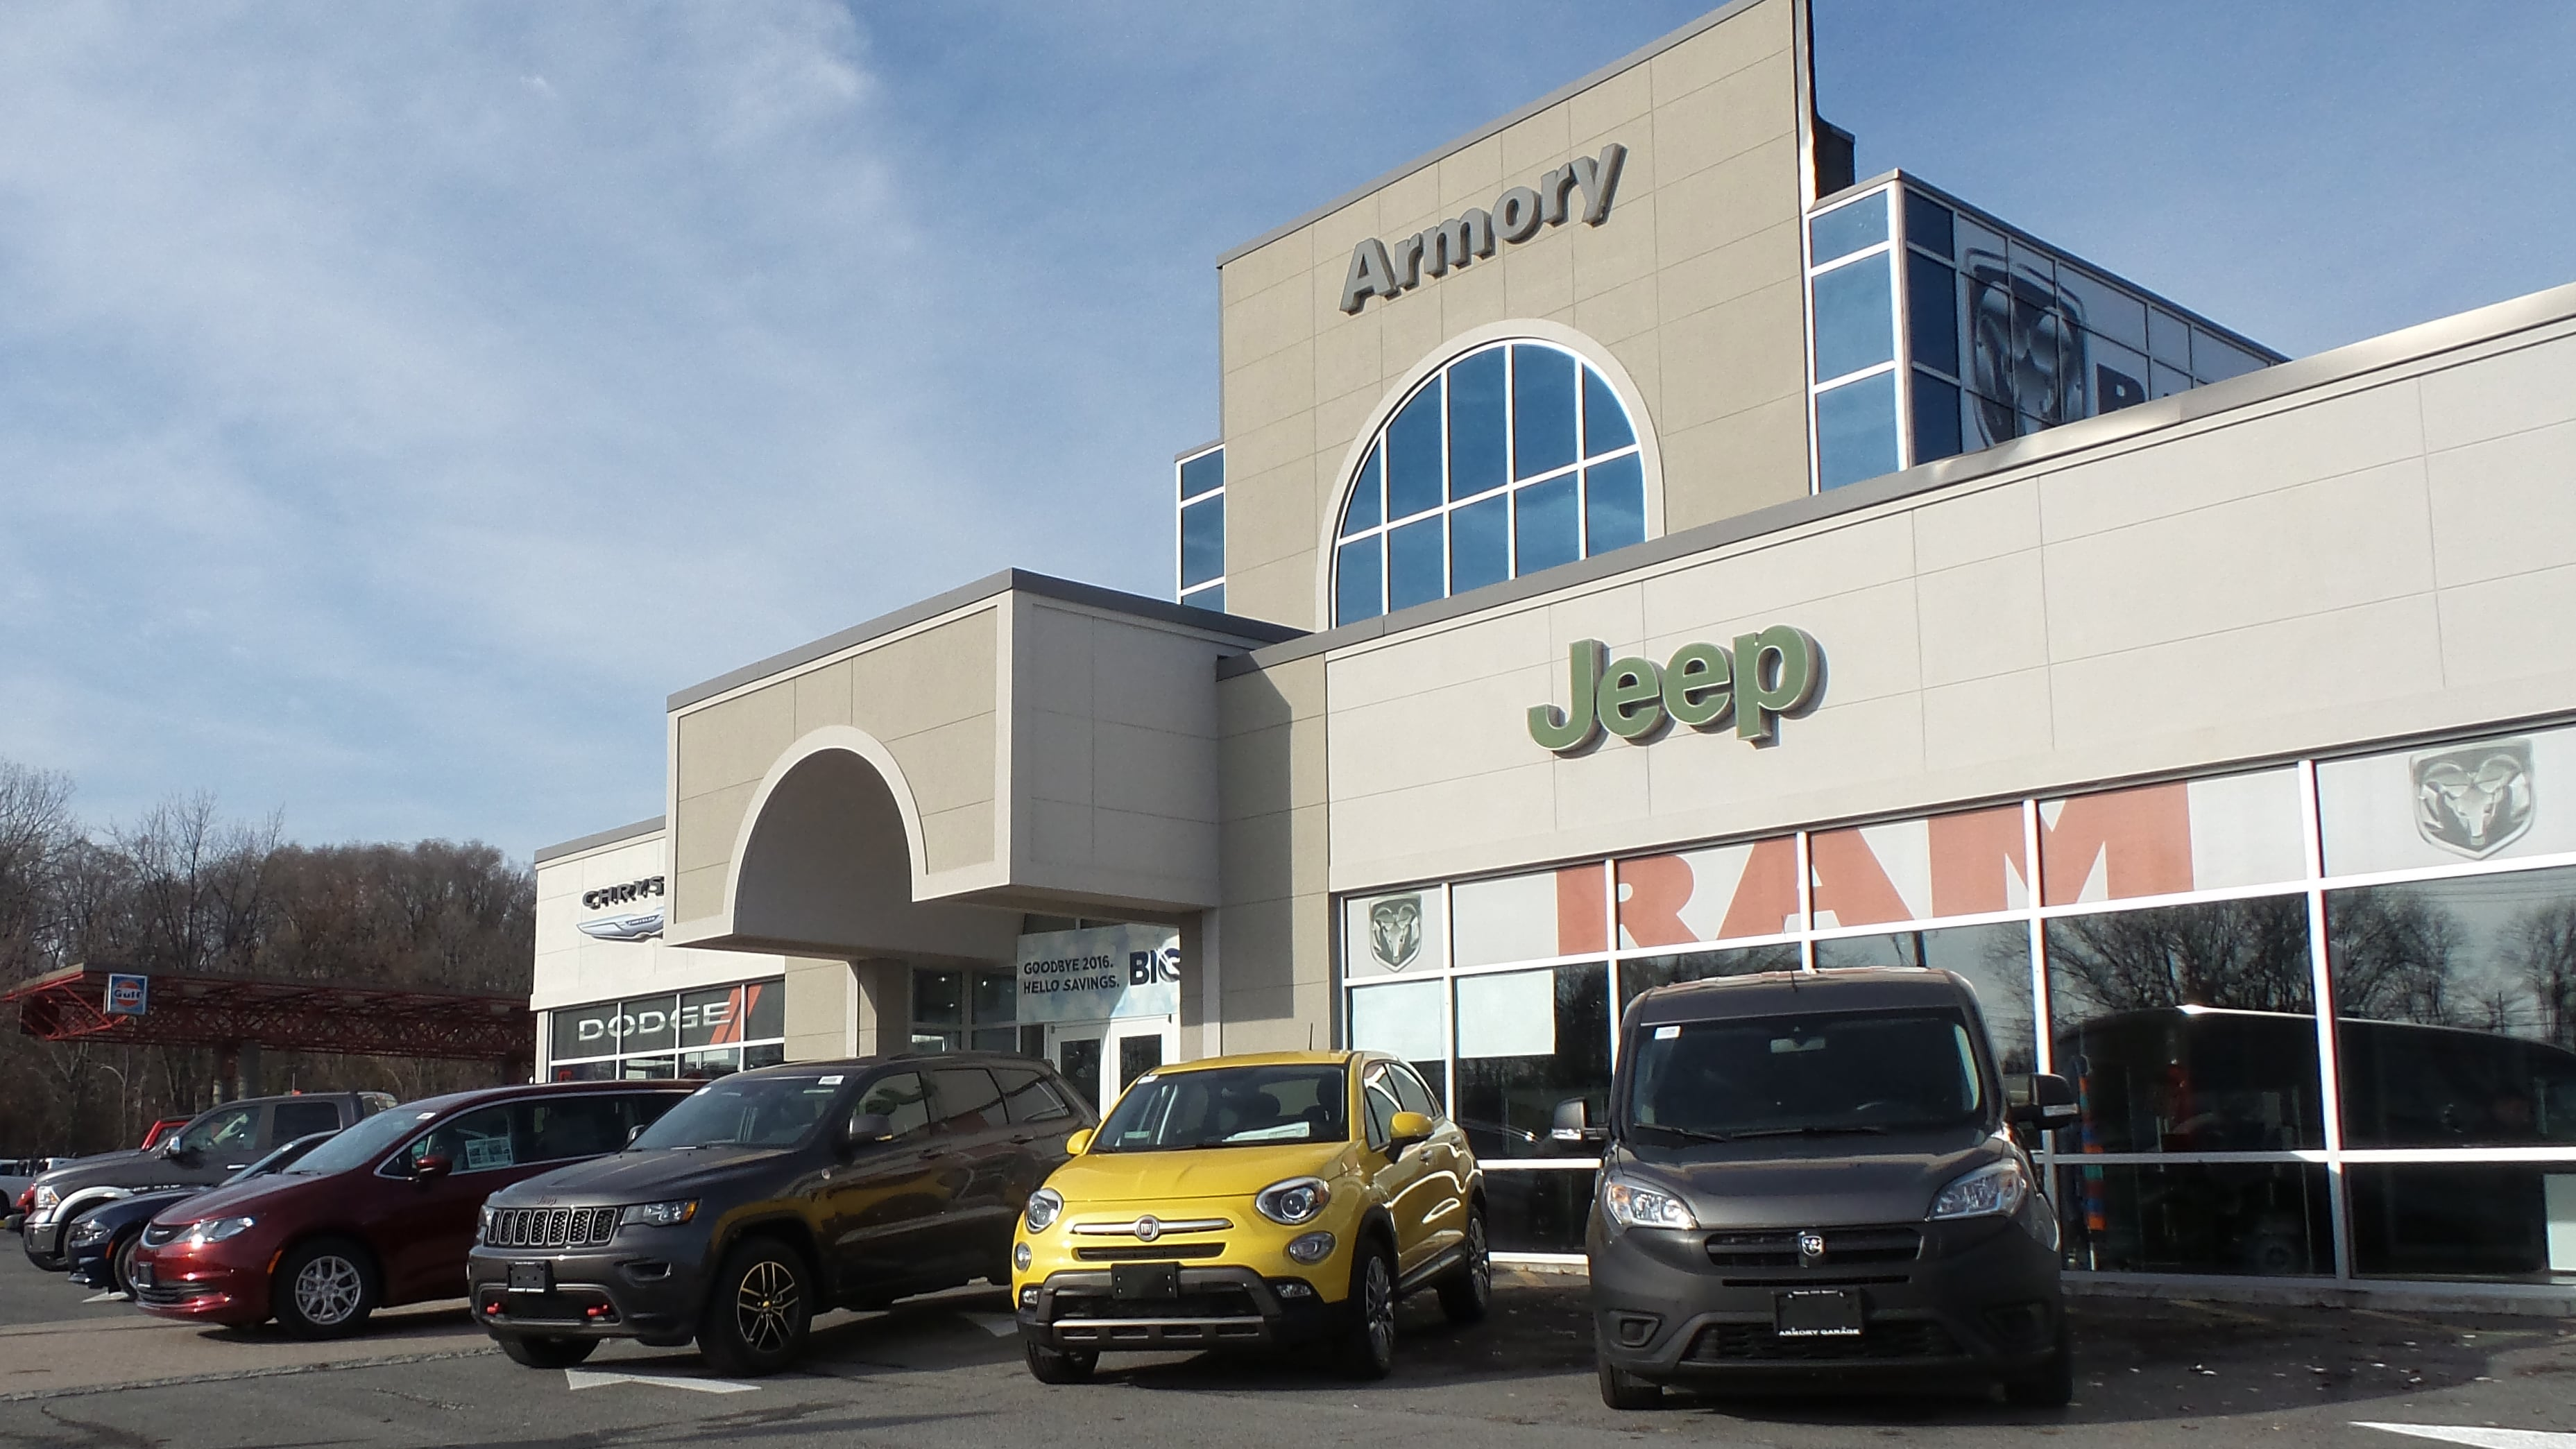 High Quality About Armory Garage   Proudly Offering New And Used Chrysler, Dodge, Jeep,  RAM And FIAT Vehicles Near Albany, Troy, Clifton Park, Latham, Schenectady,  NY